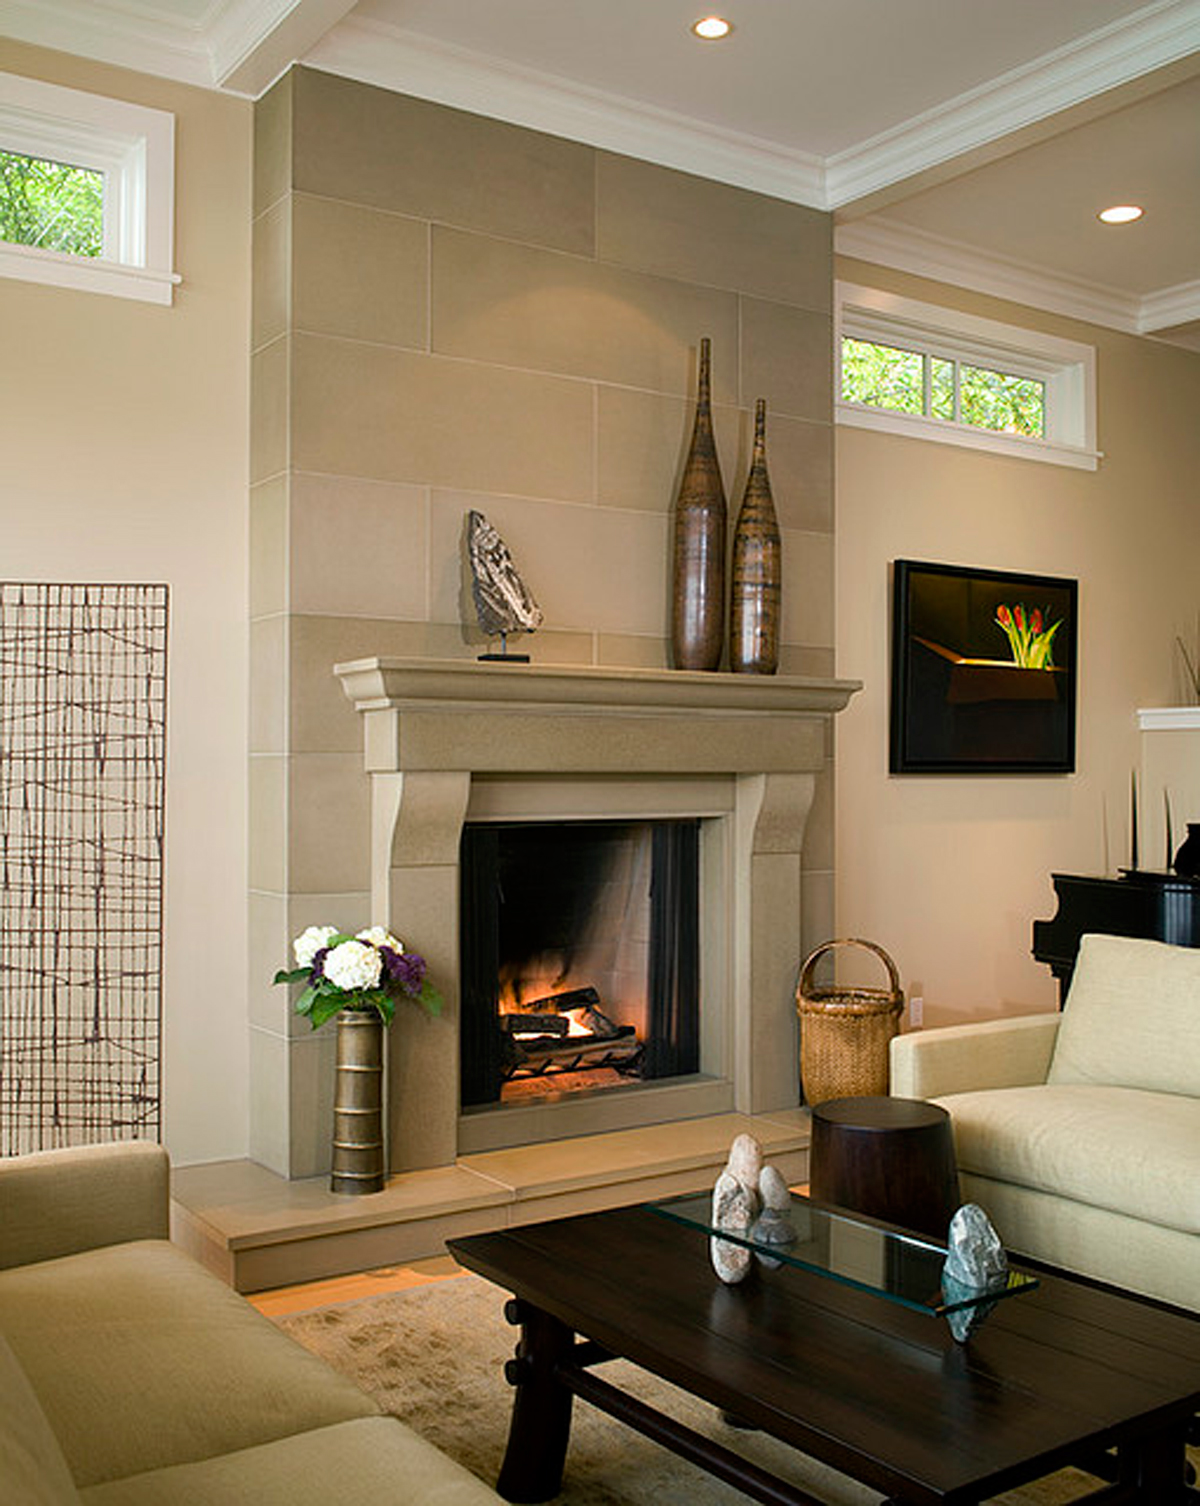 stone fireplace design ideas - Fireplace Design Ideas With Tile